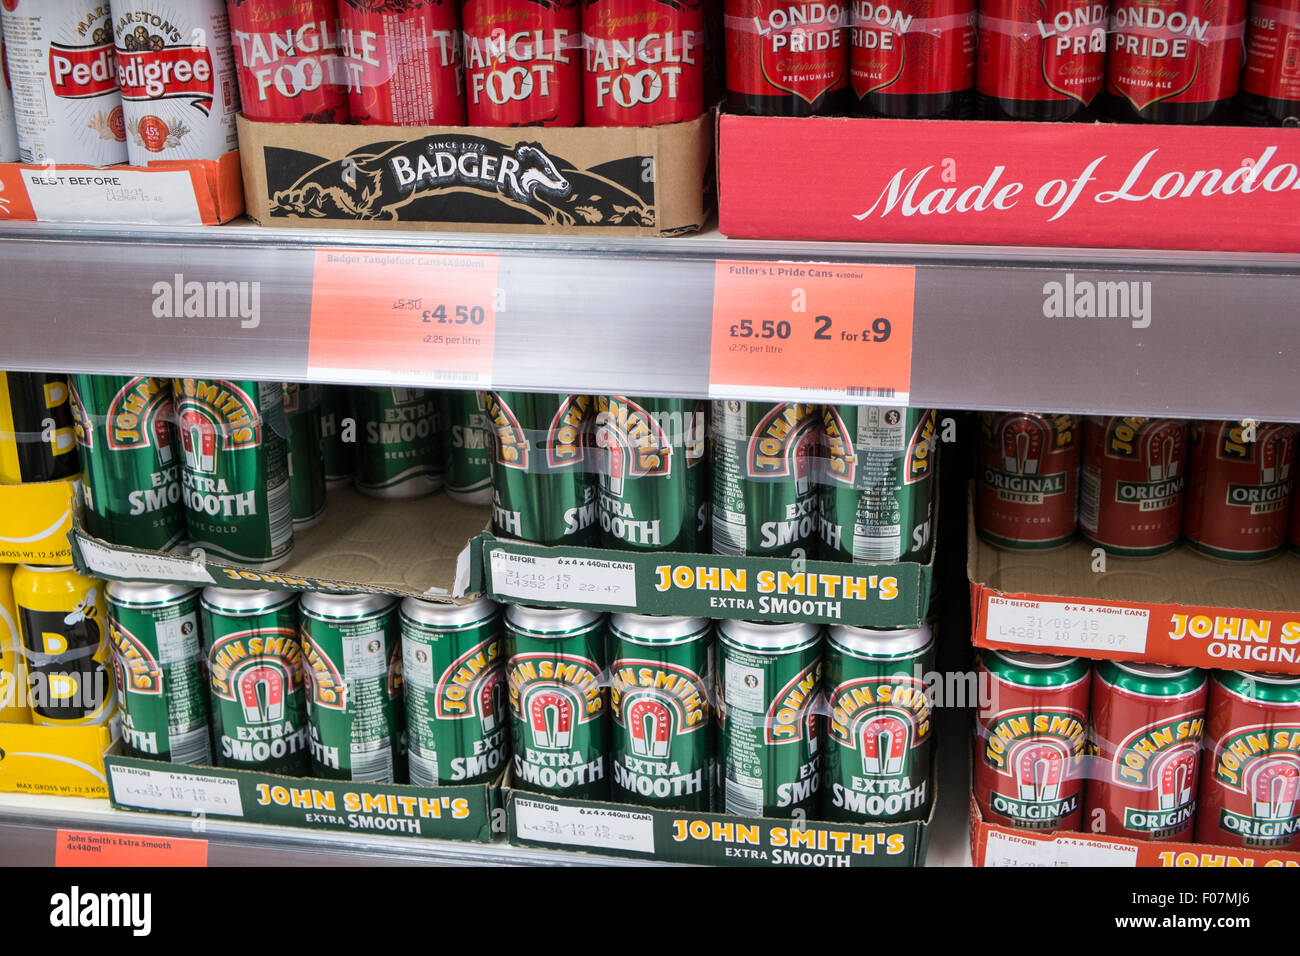 Sainsburys supermarket shelves in a store in Derbyshire,England showing english beers on sale including tangle foot - Stock Image